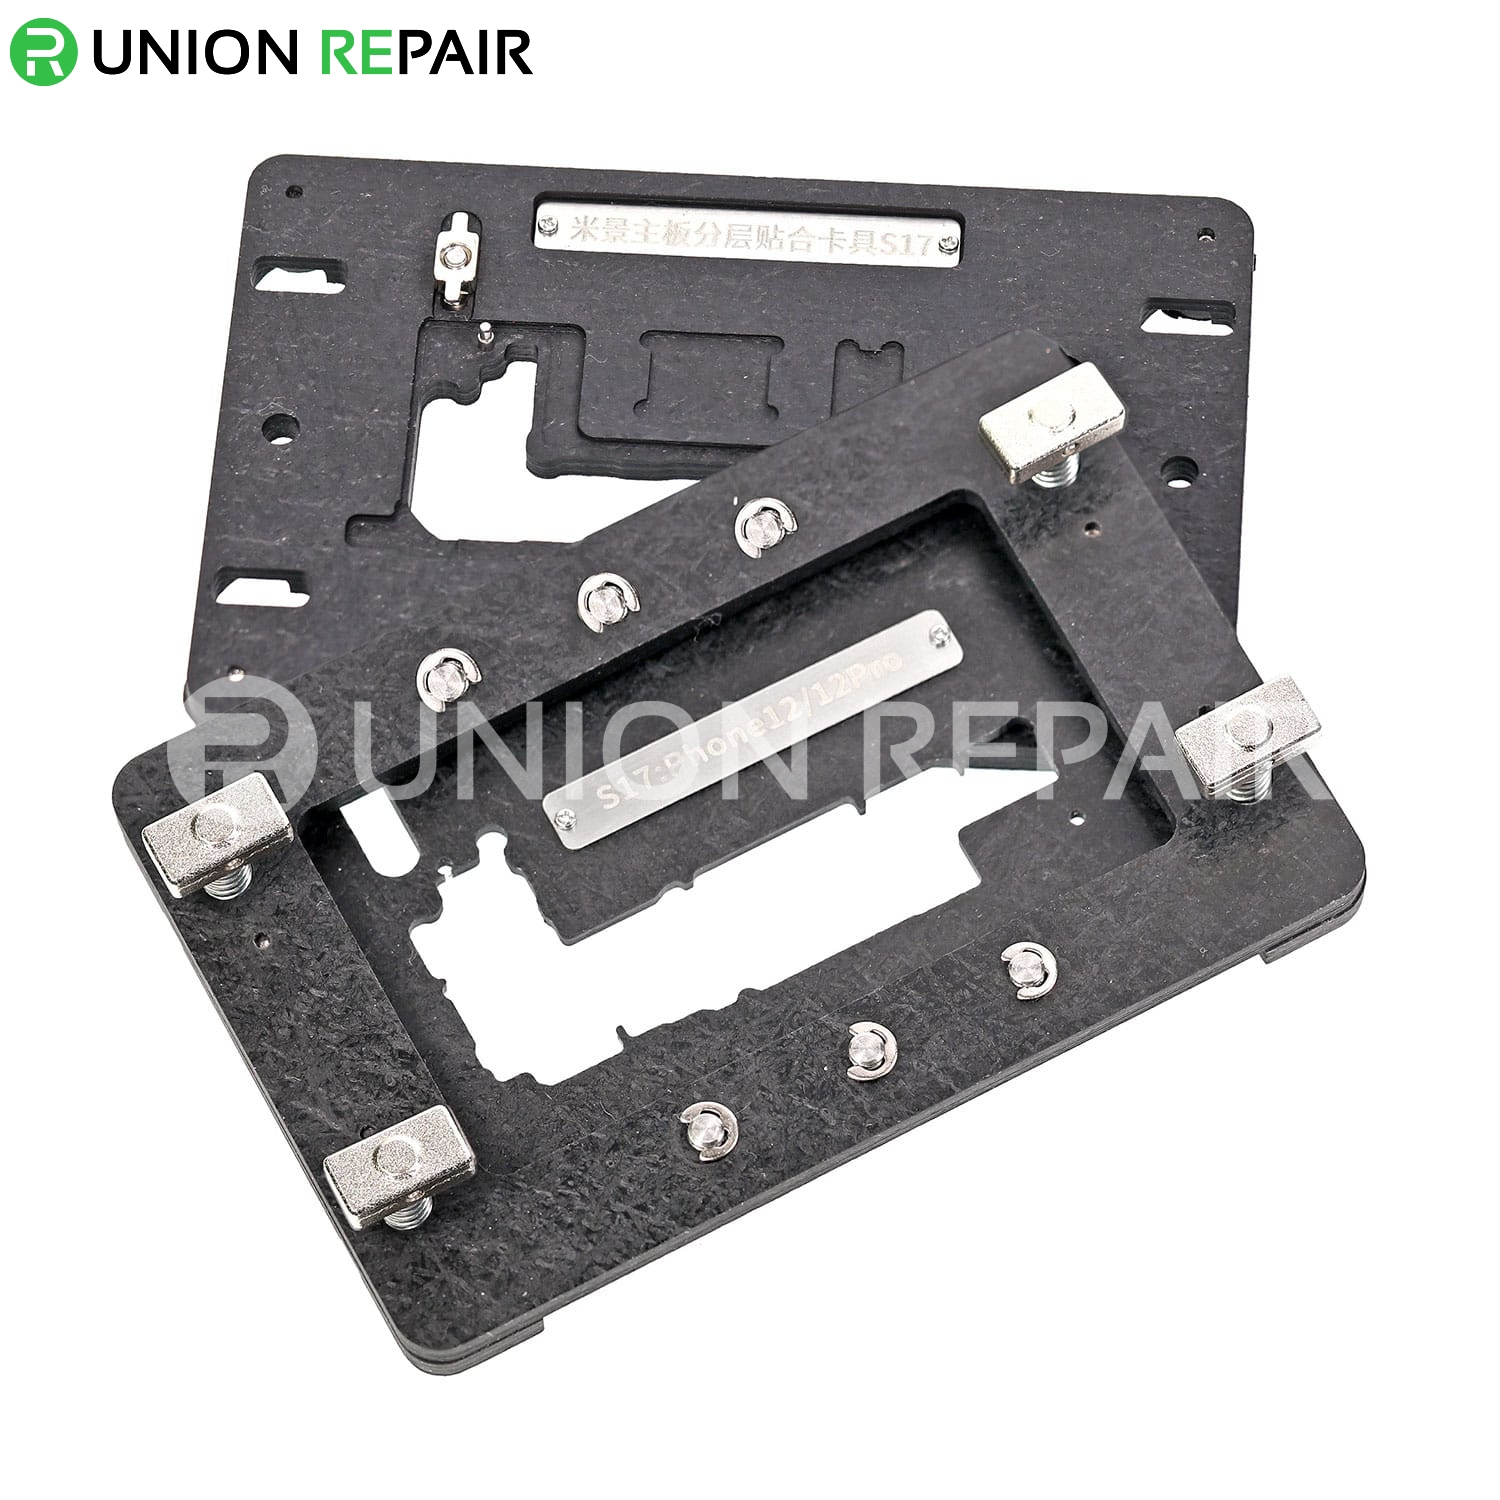 MiJing S17 iPhone 12/12Pro Lock Board Maintenance Fixture